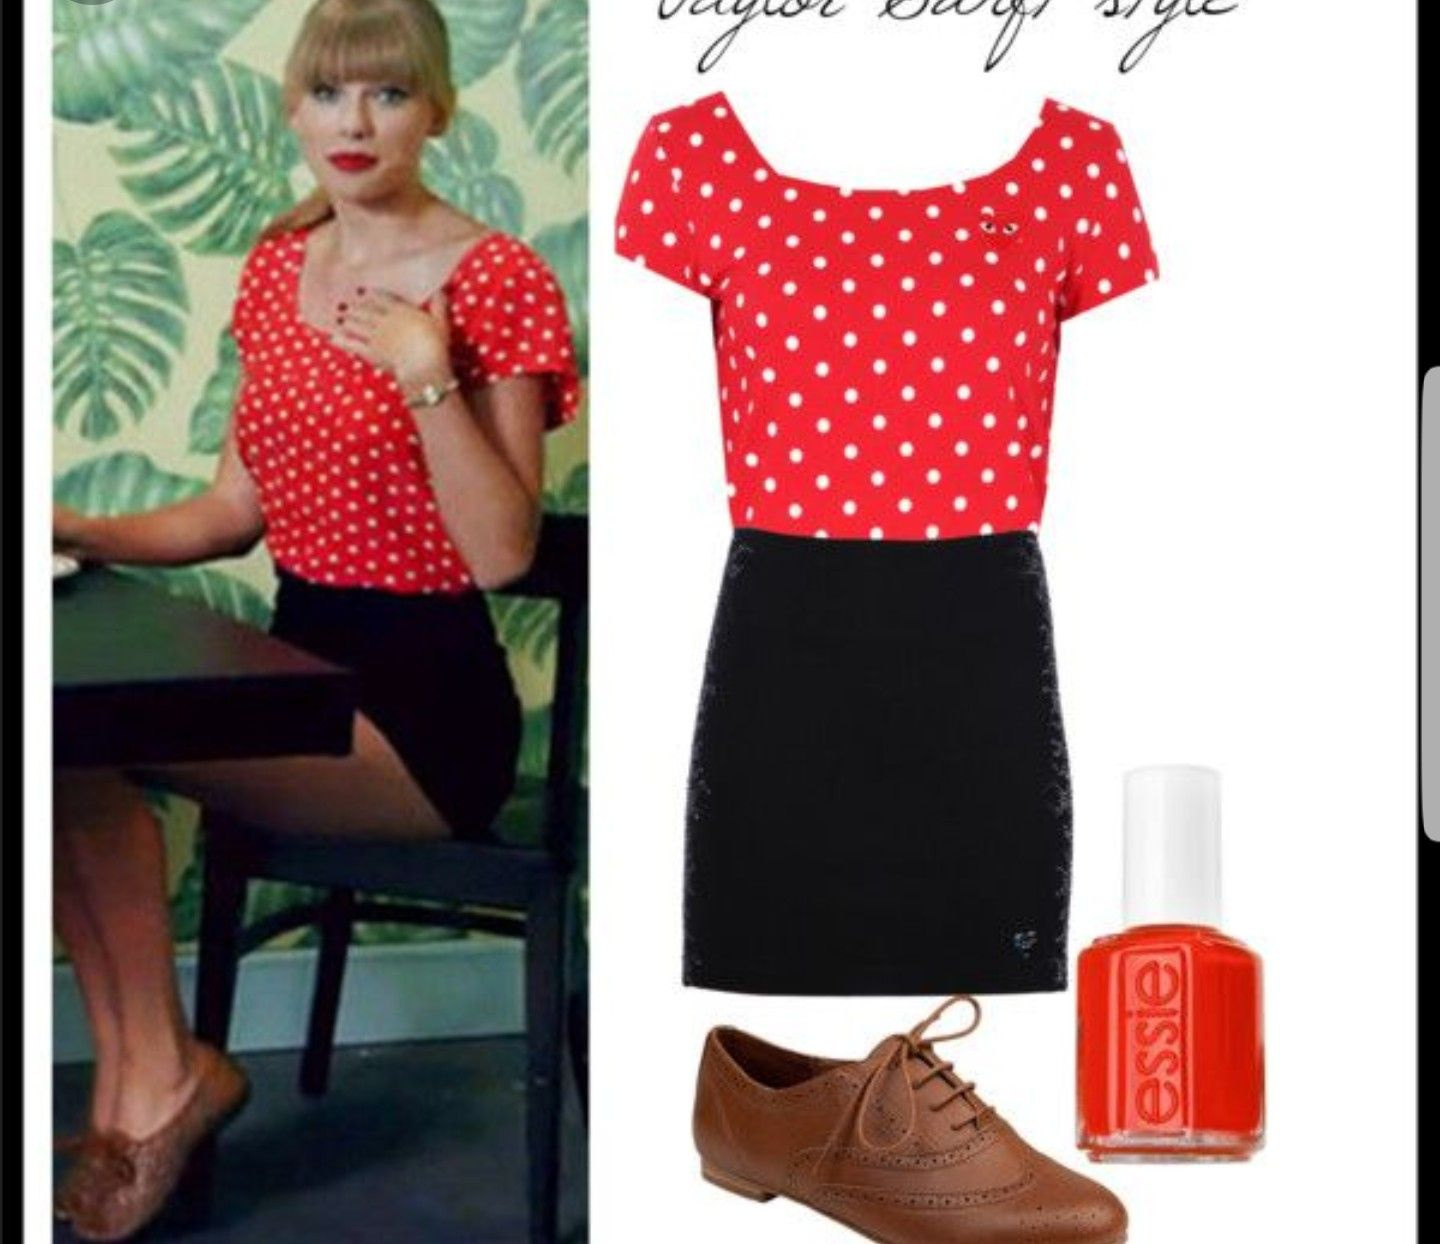 Pin by Blondie_♡ on Summer! | Taylor swift style, Taylor ...